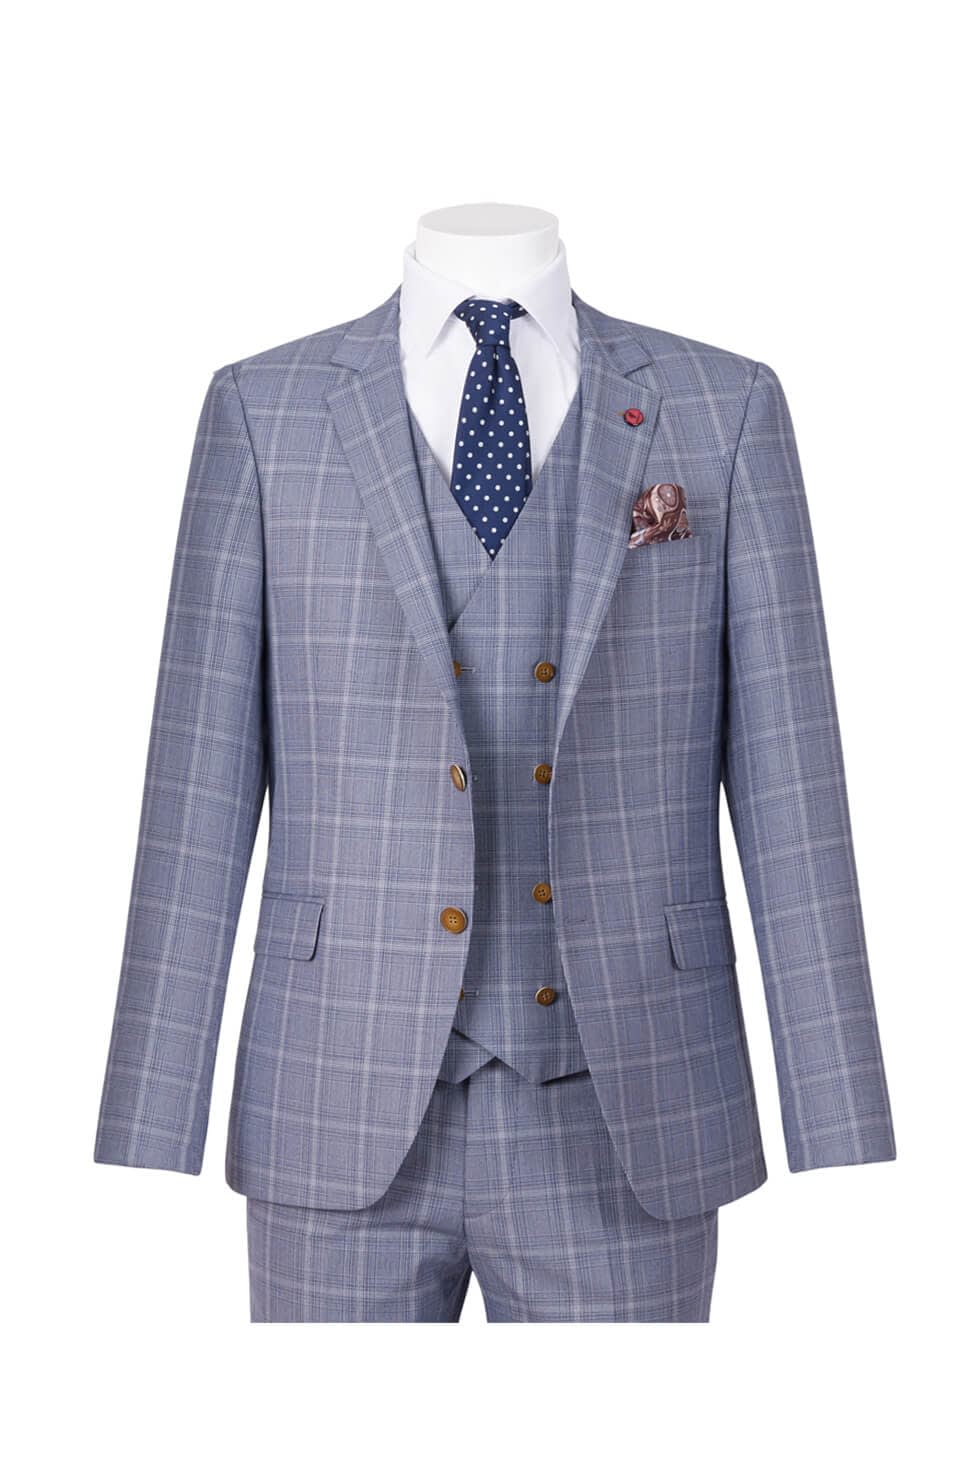 Ed Oliver Three Piece Check Suit